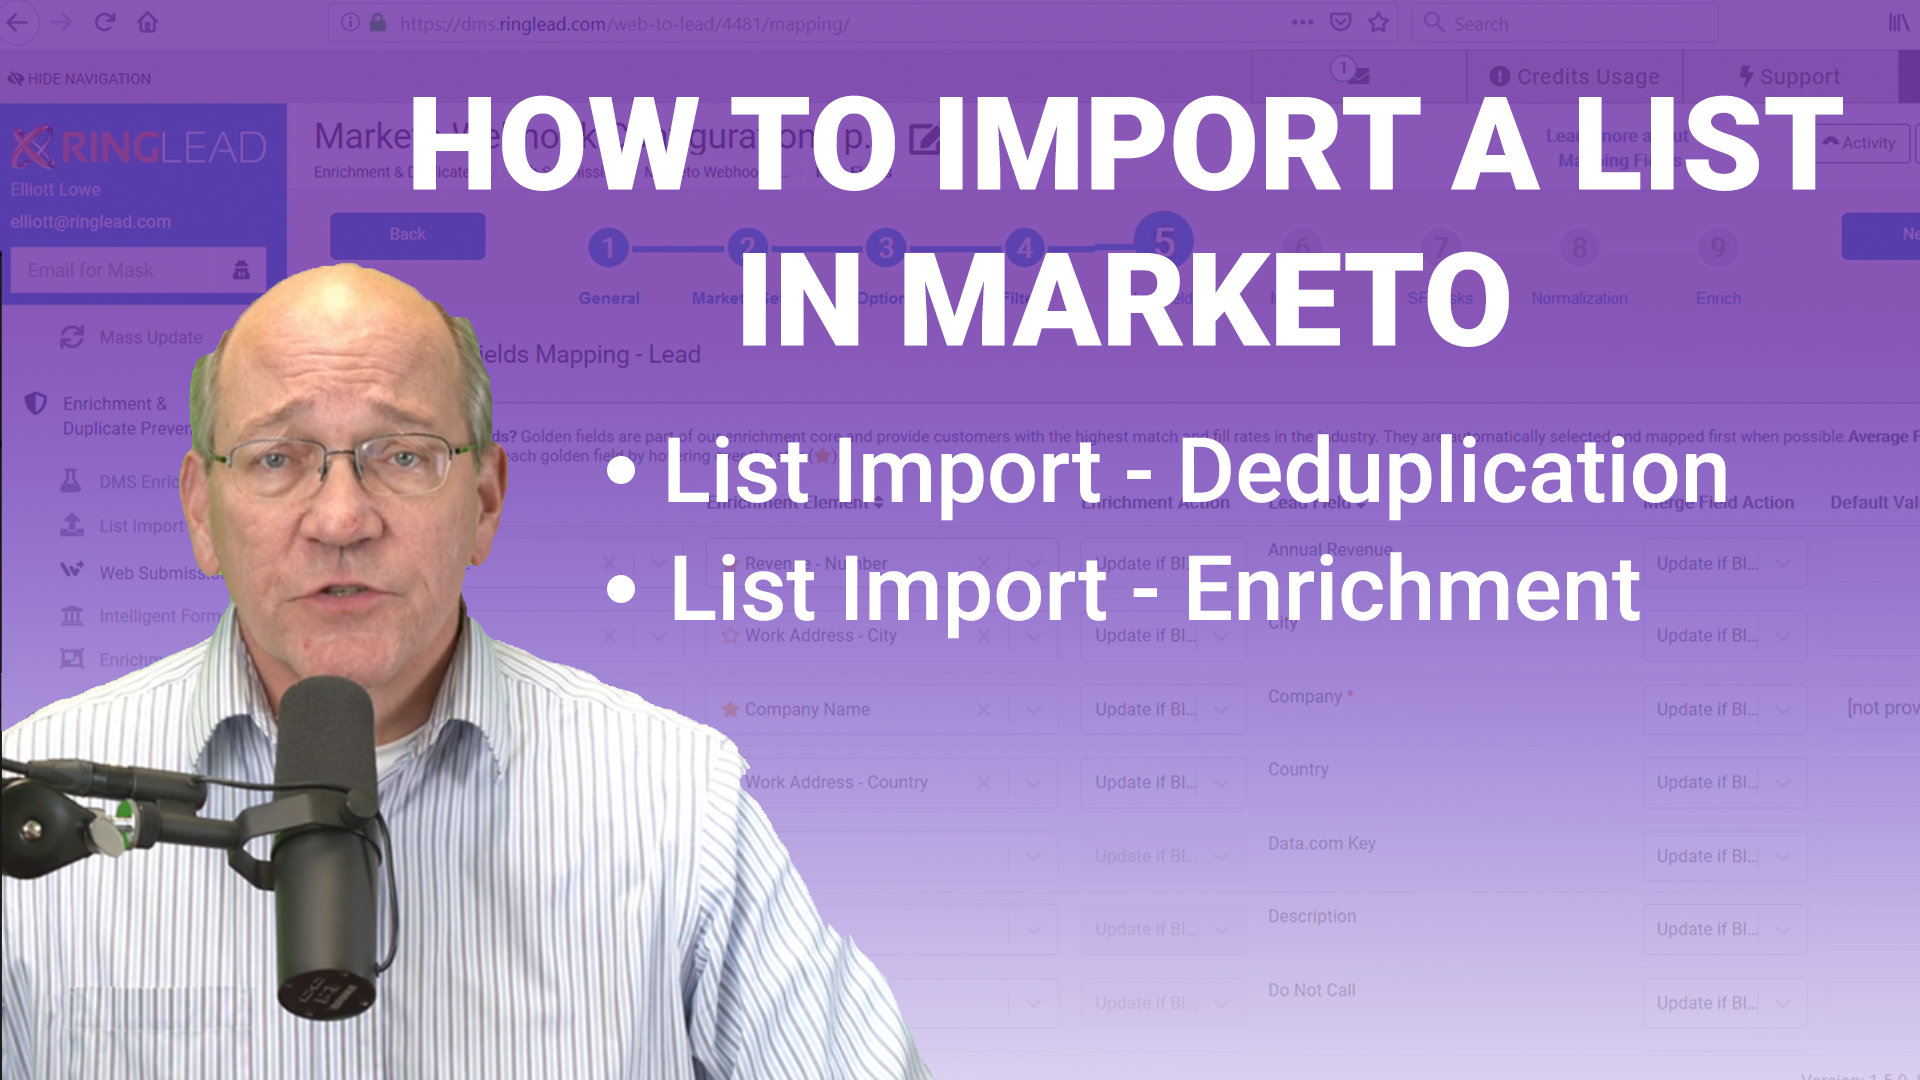 Best Practices for Importing a List to Marketo